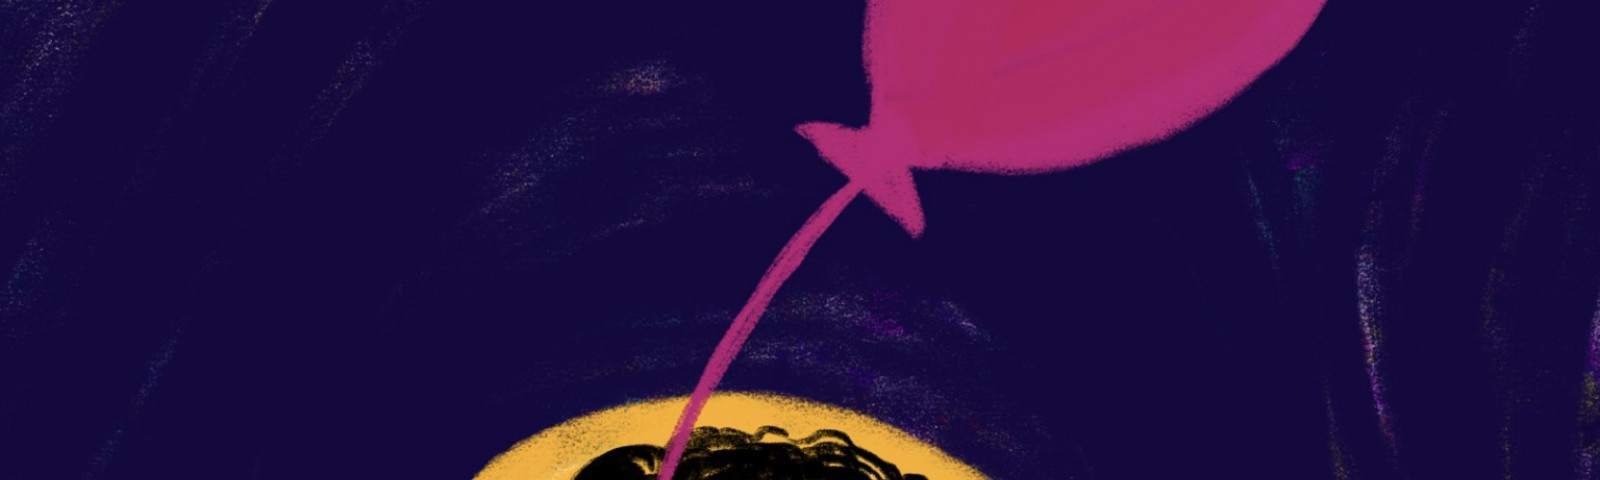 A dark silhouette of a curly-haired person, with a pink balloon strung through their heart, coming out of one of their eyes.